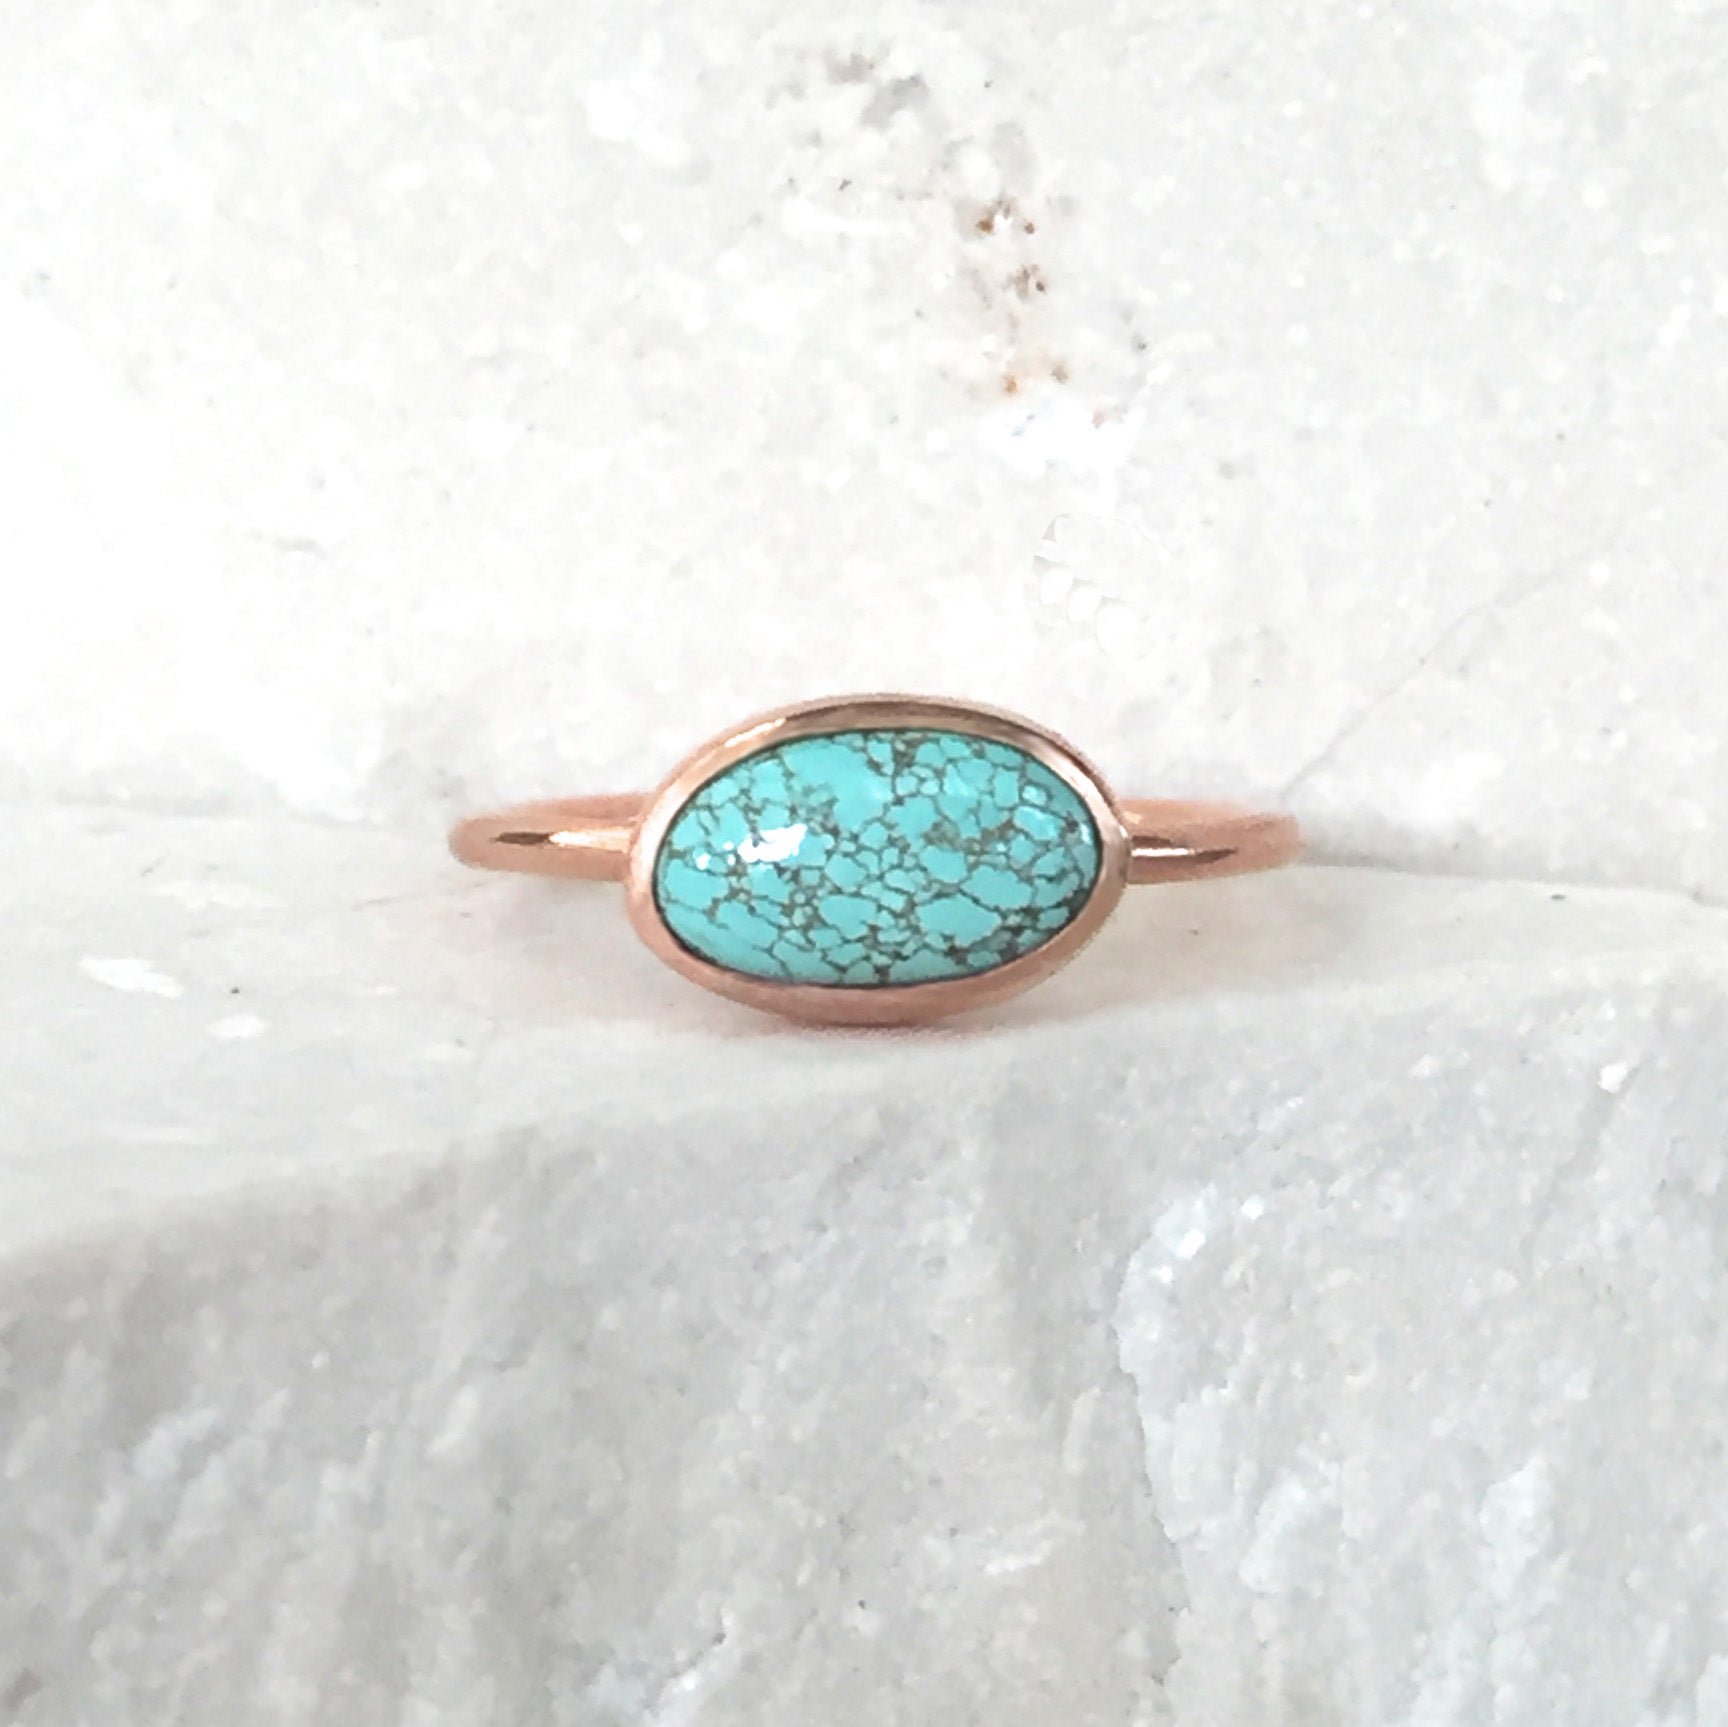 pom with sterling stone of ring silver rings stones mind spinning image peace turquoise